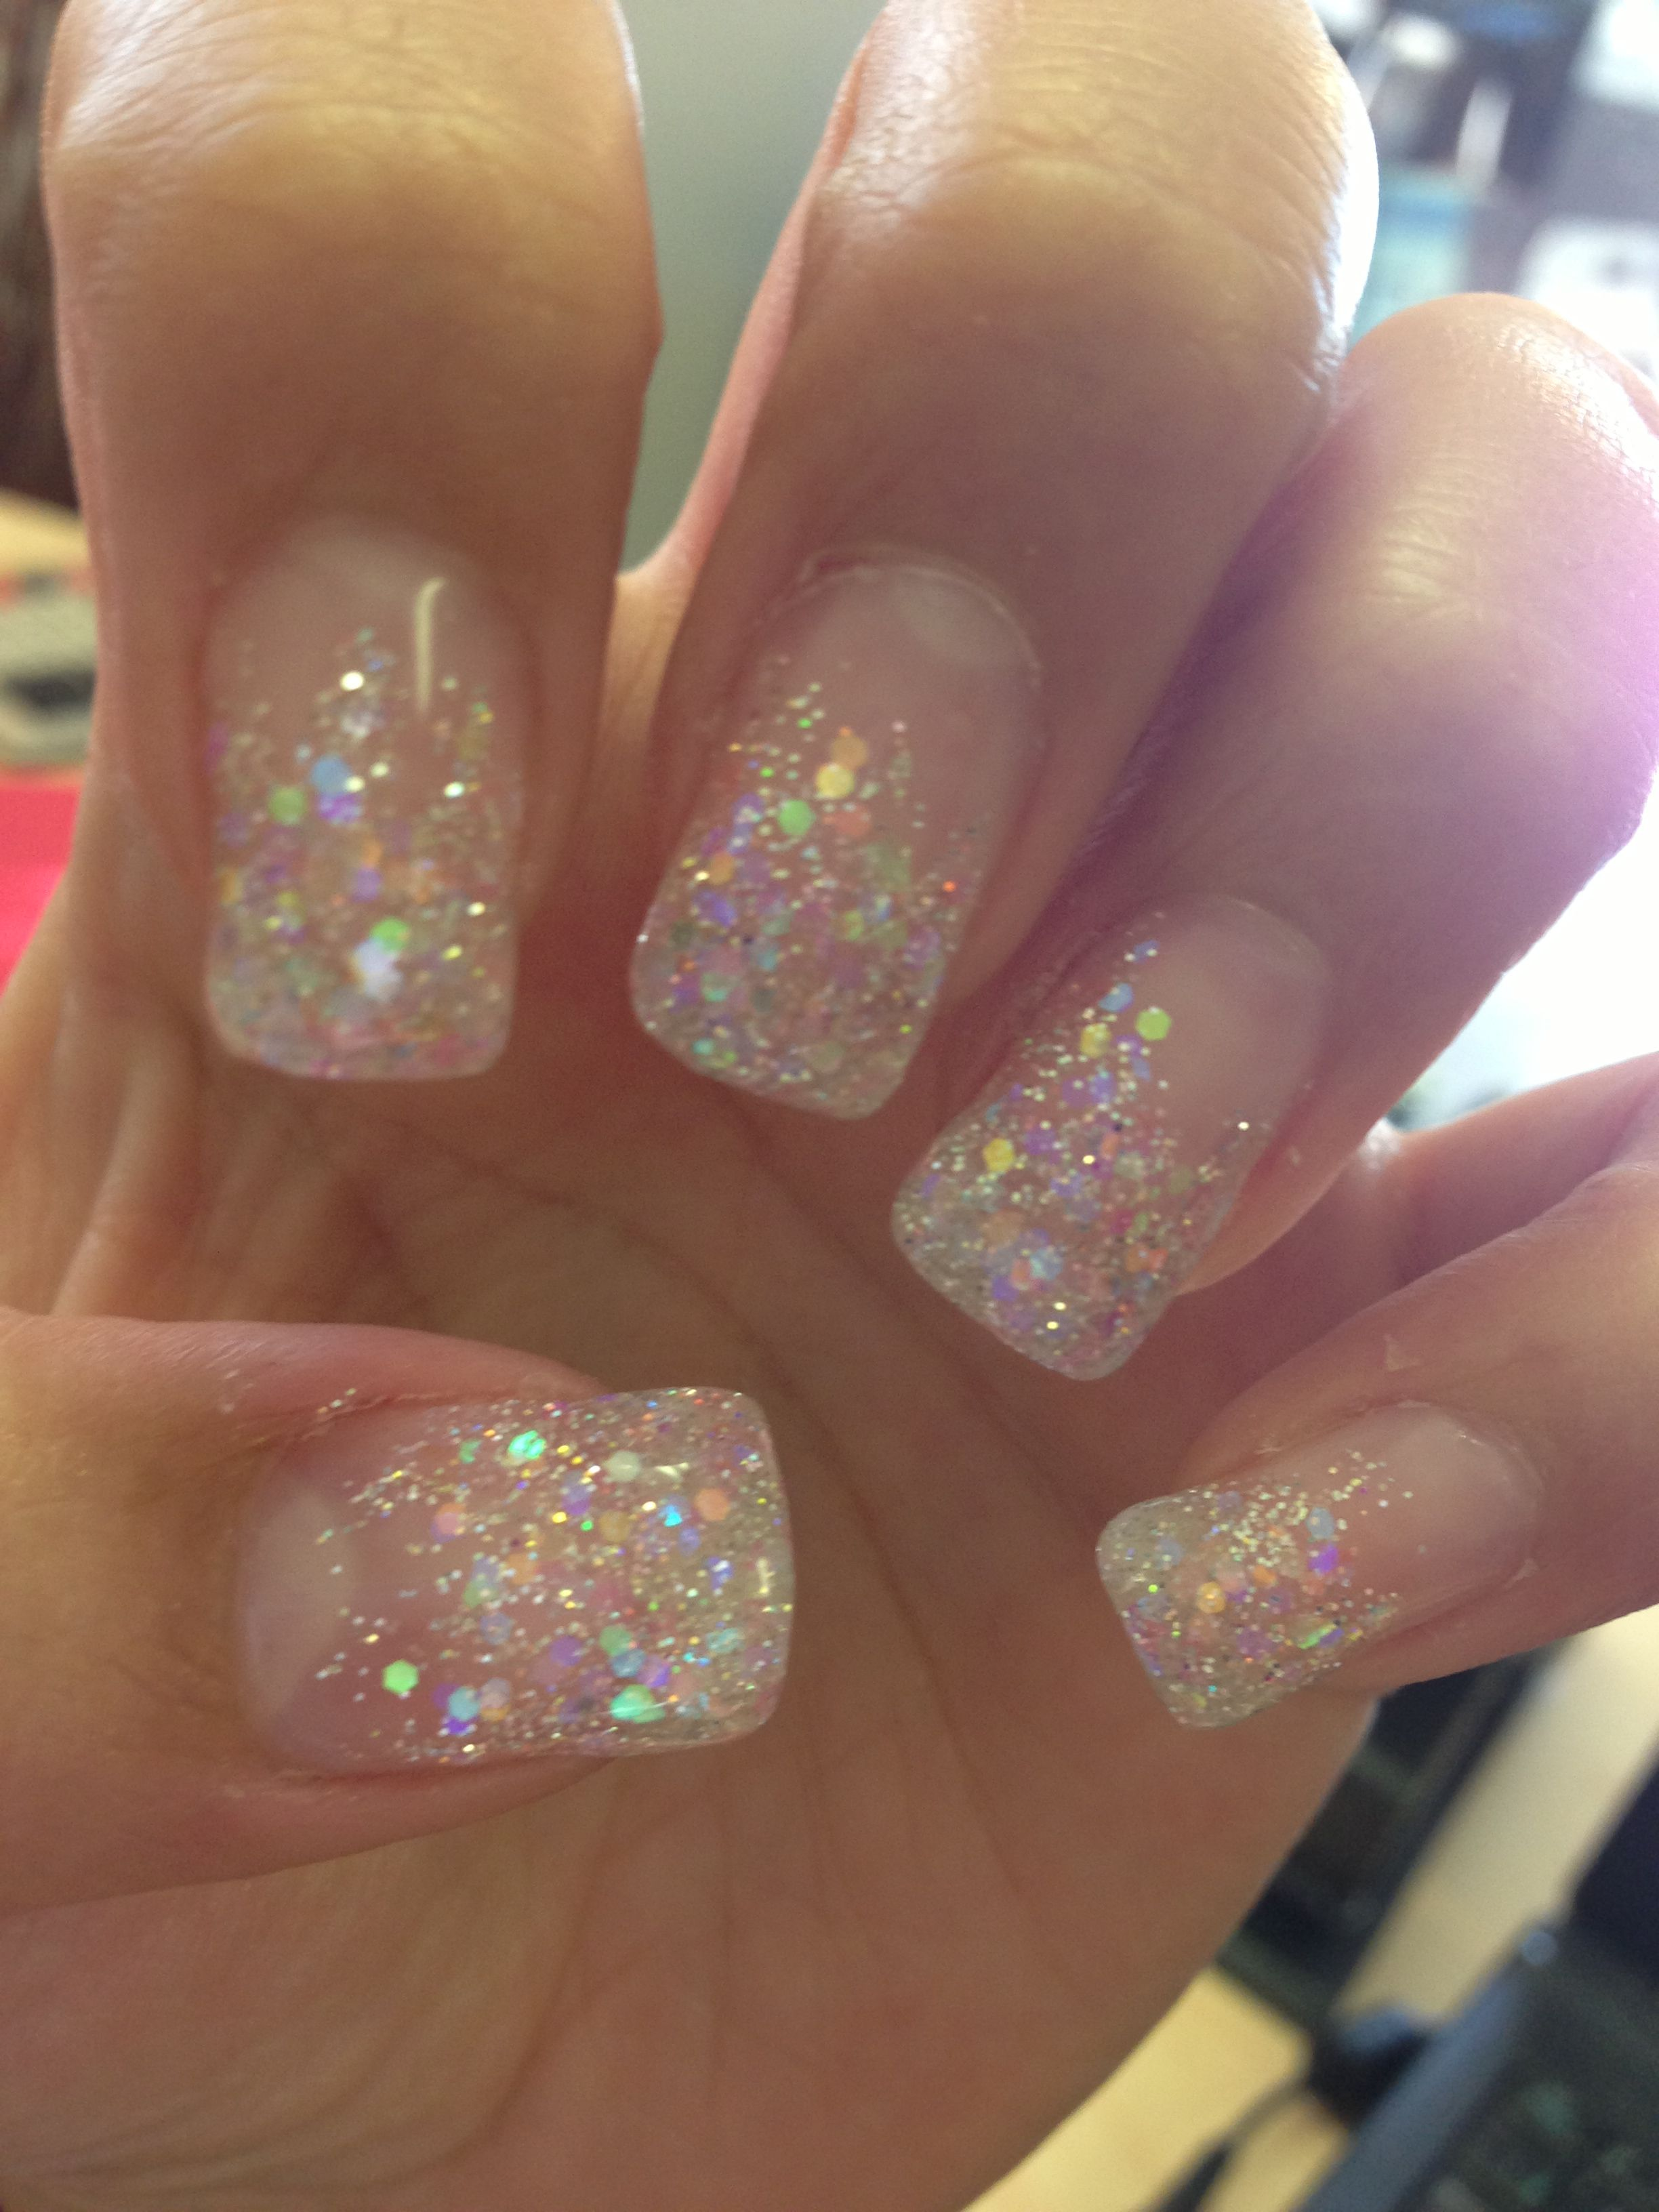 Pin By Morgan On Nails Pinterest Sparkle Gel Nails Facebook And